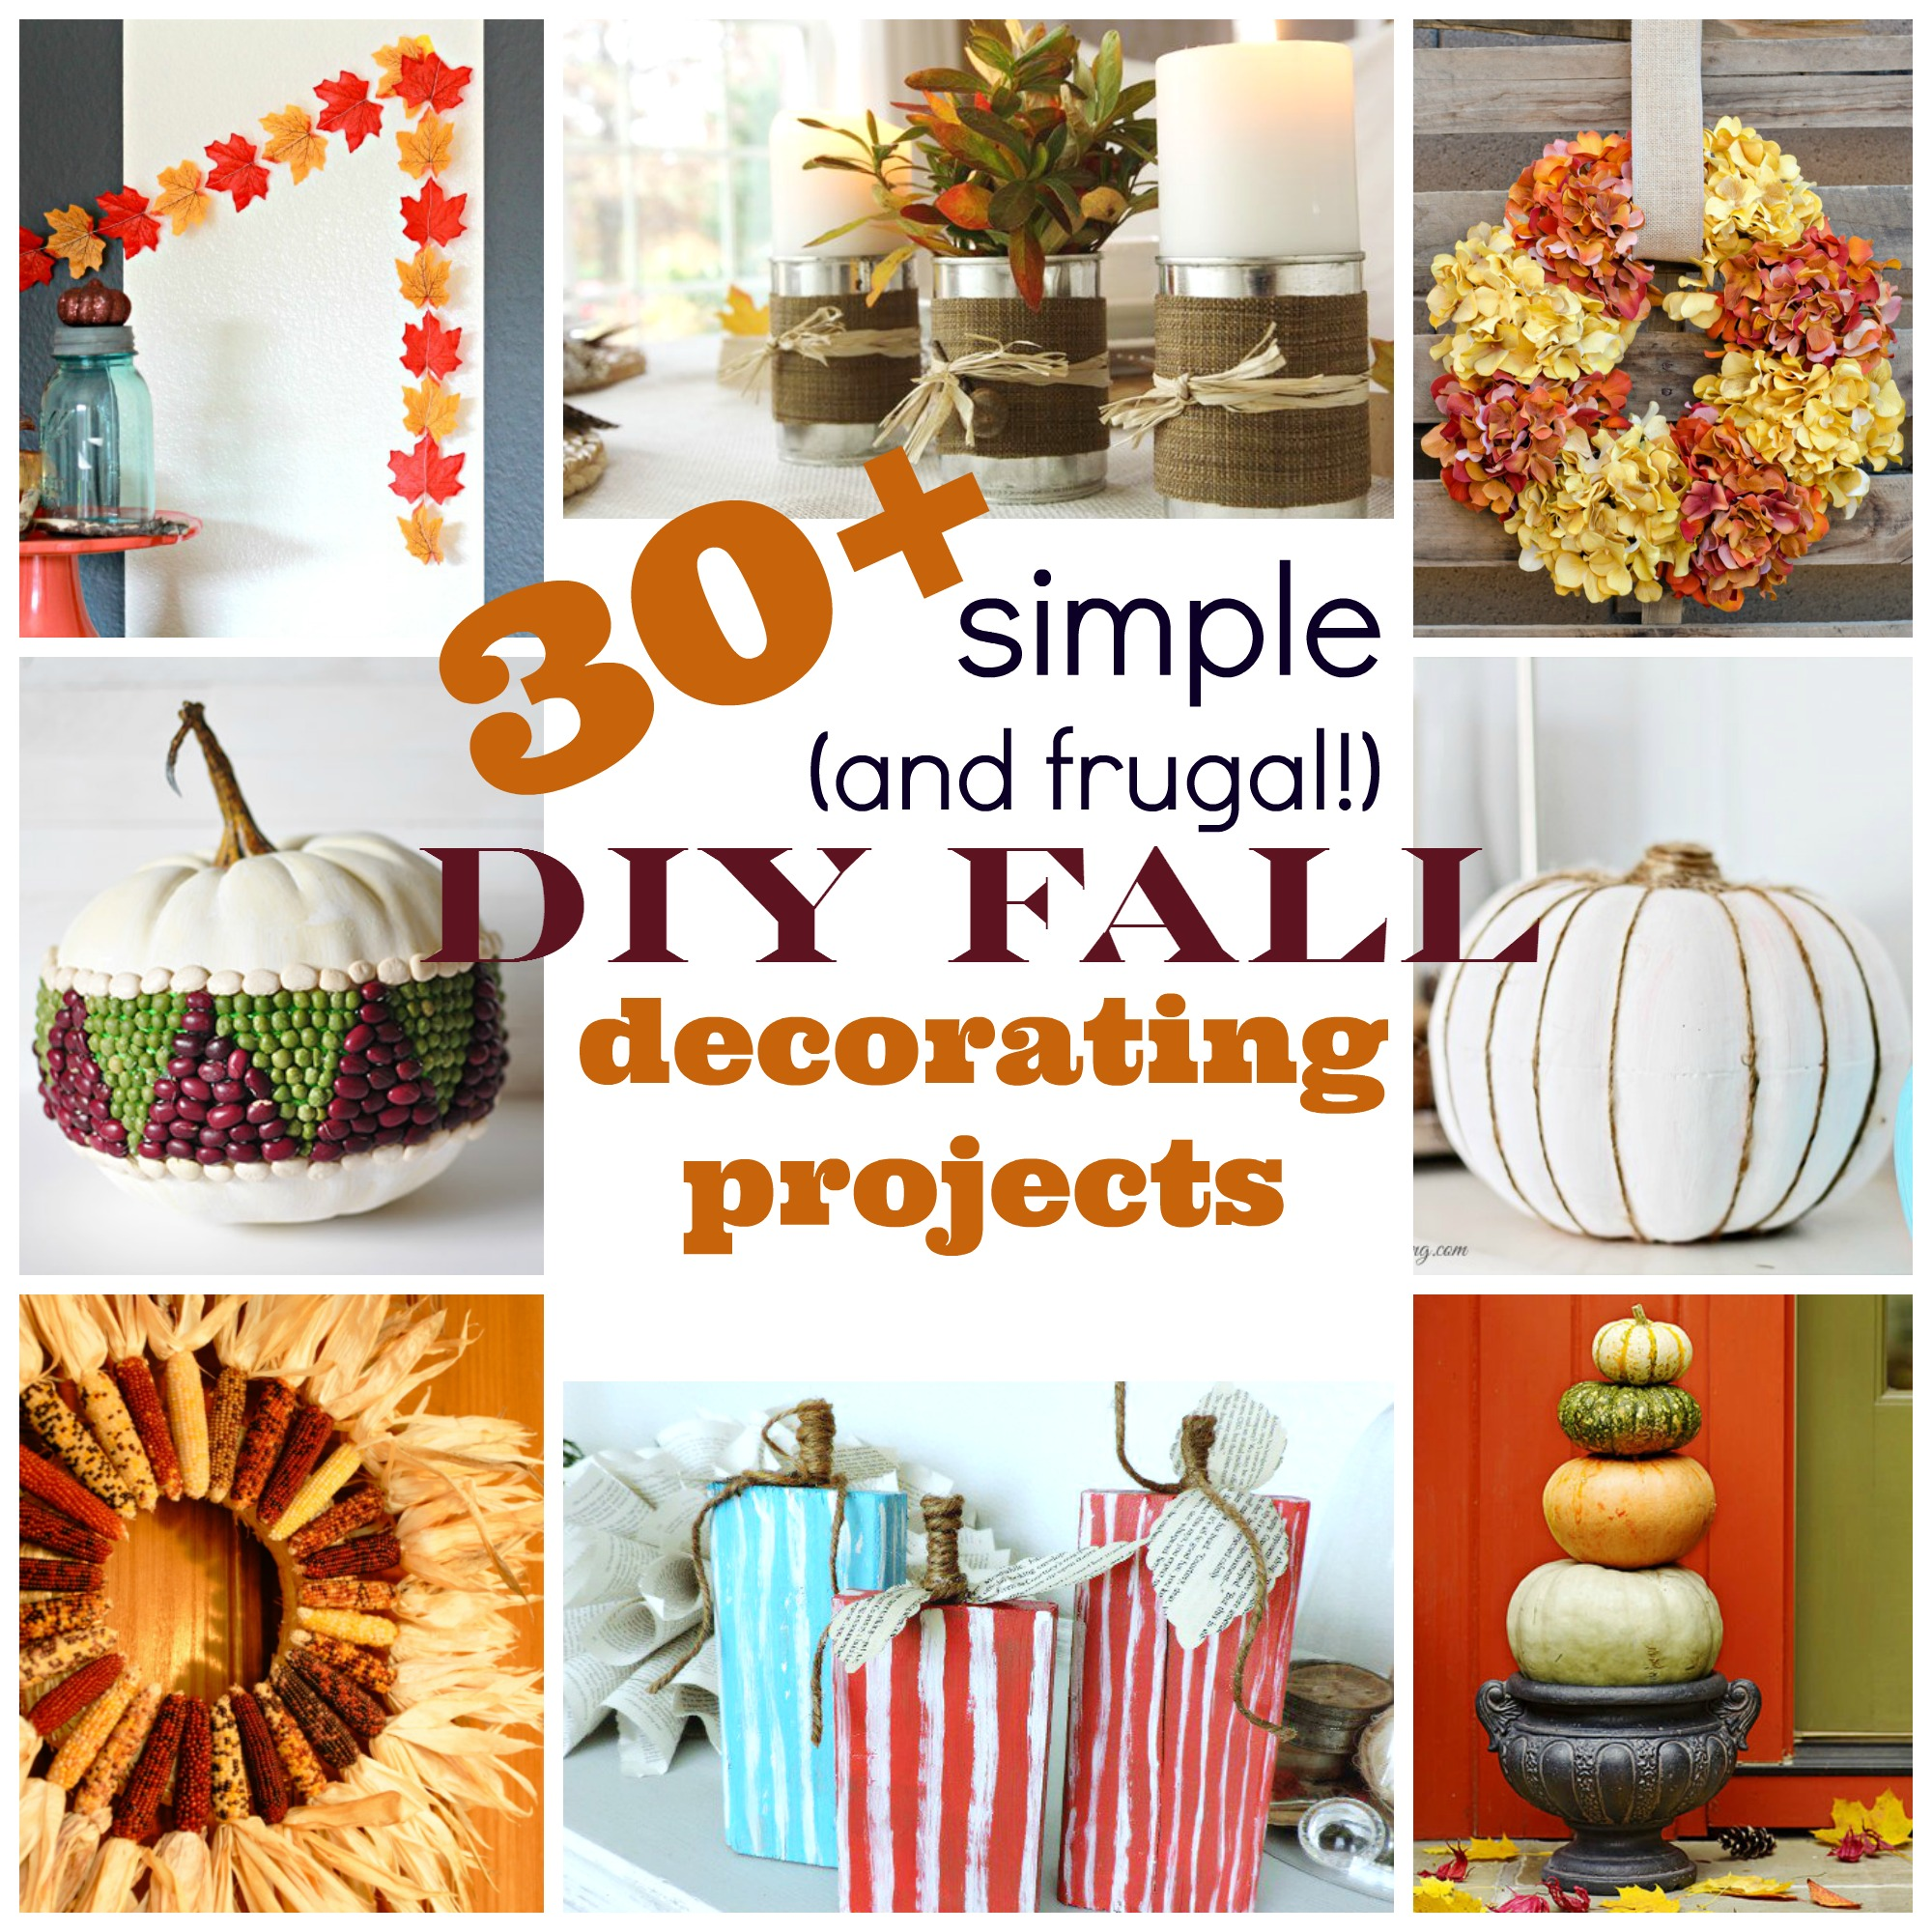 Thrifty Blogs On Home Decor: 30+ Simple (and Frugal!) DIY Fall